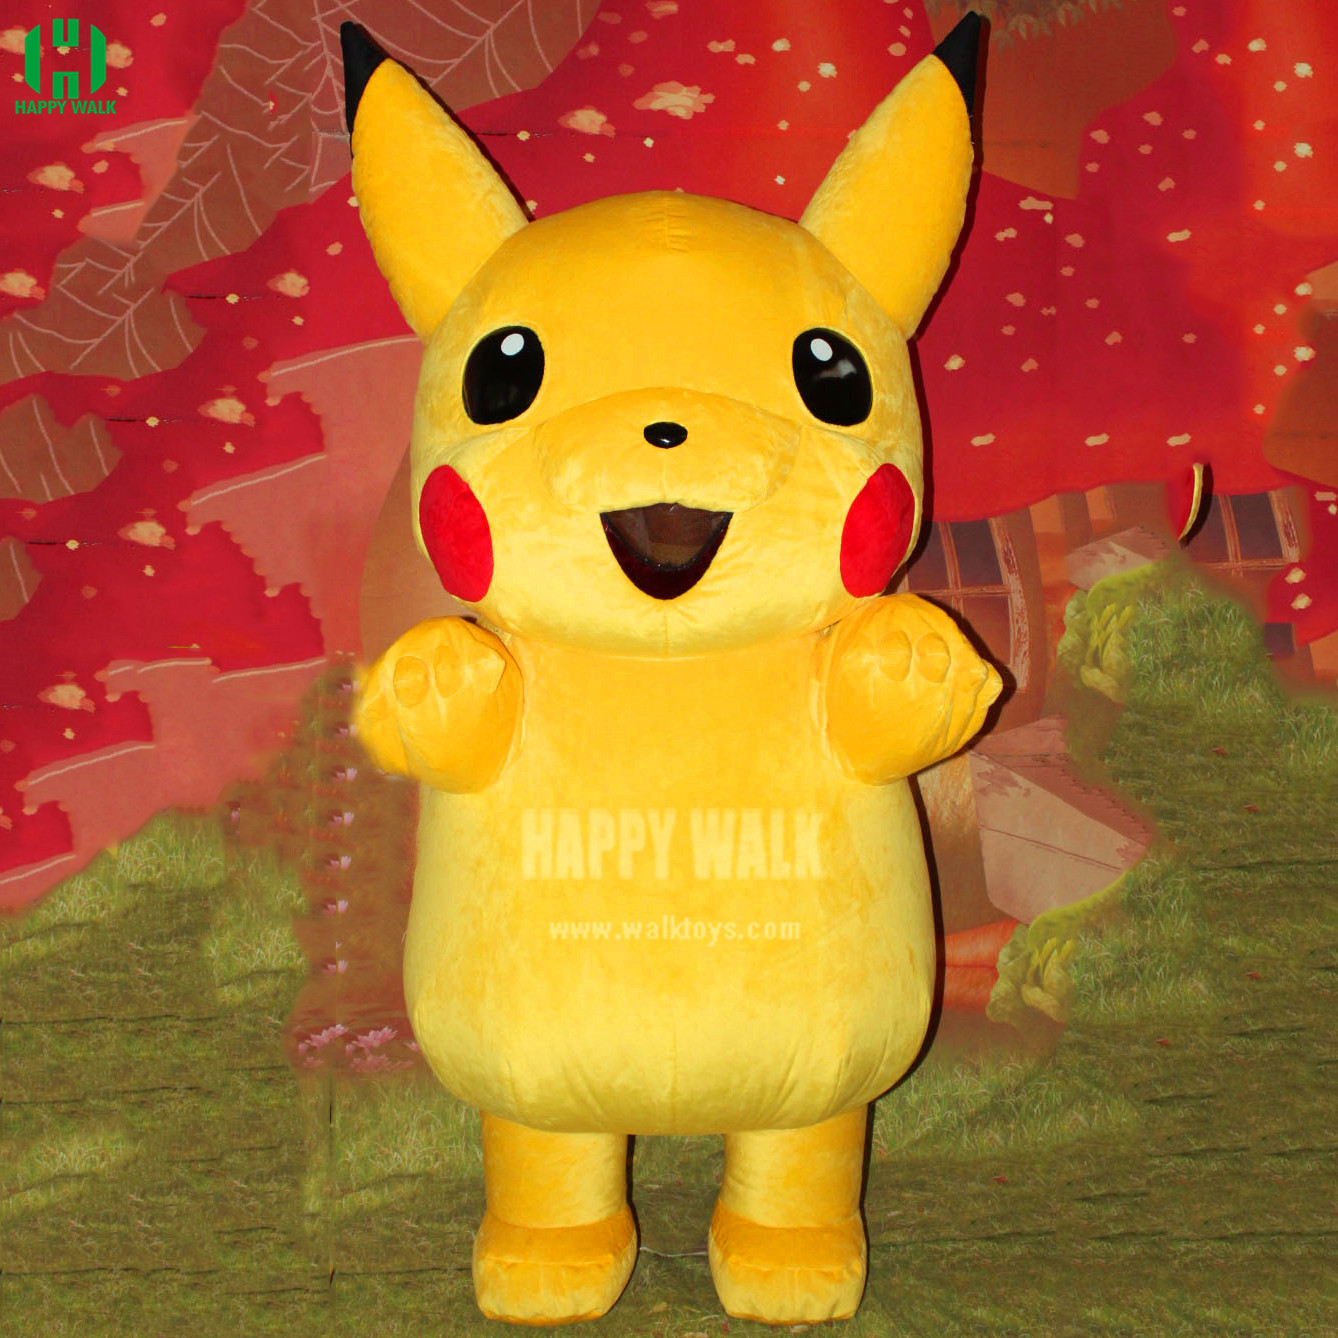 2019 New Hot Selling Movie Character Pikachu Inflatable Mascot Costume Halloween Party Performance Cartoon Costume For